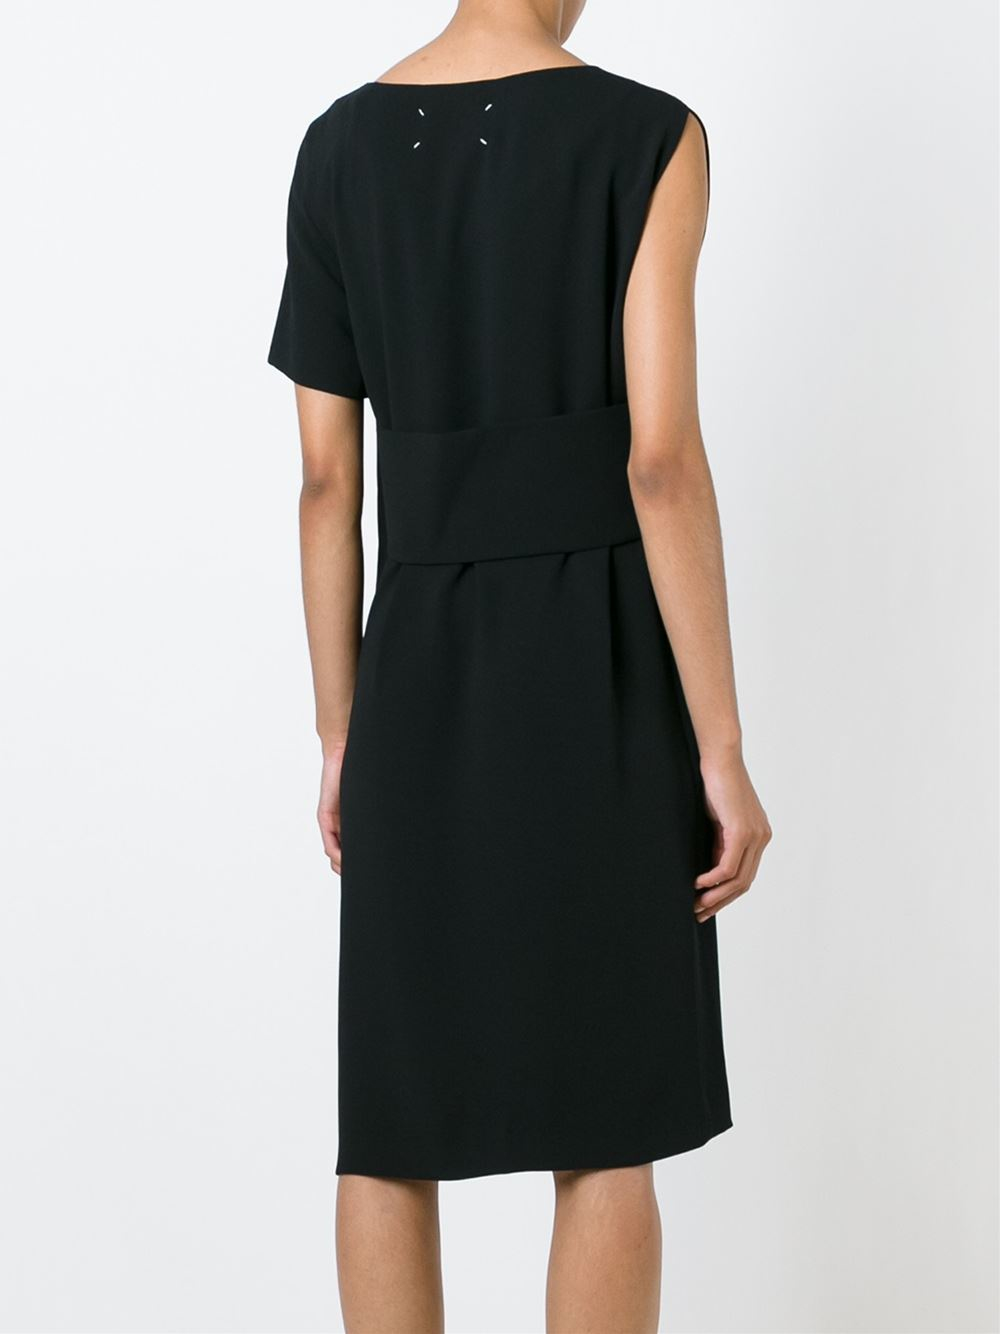 Lyst maison margiela banded asymmetric dress in black for Maison de margiela